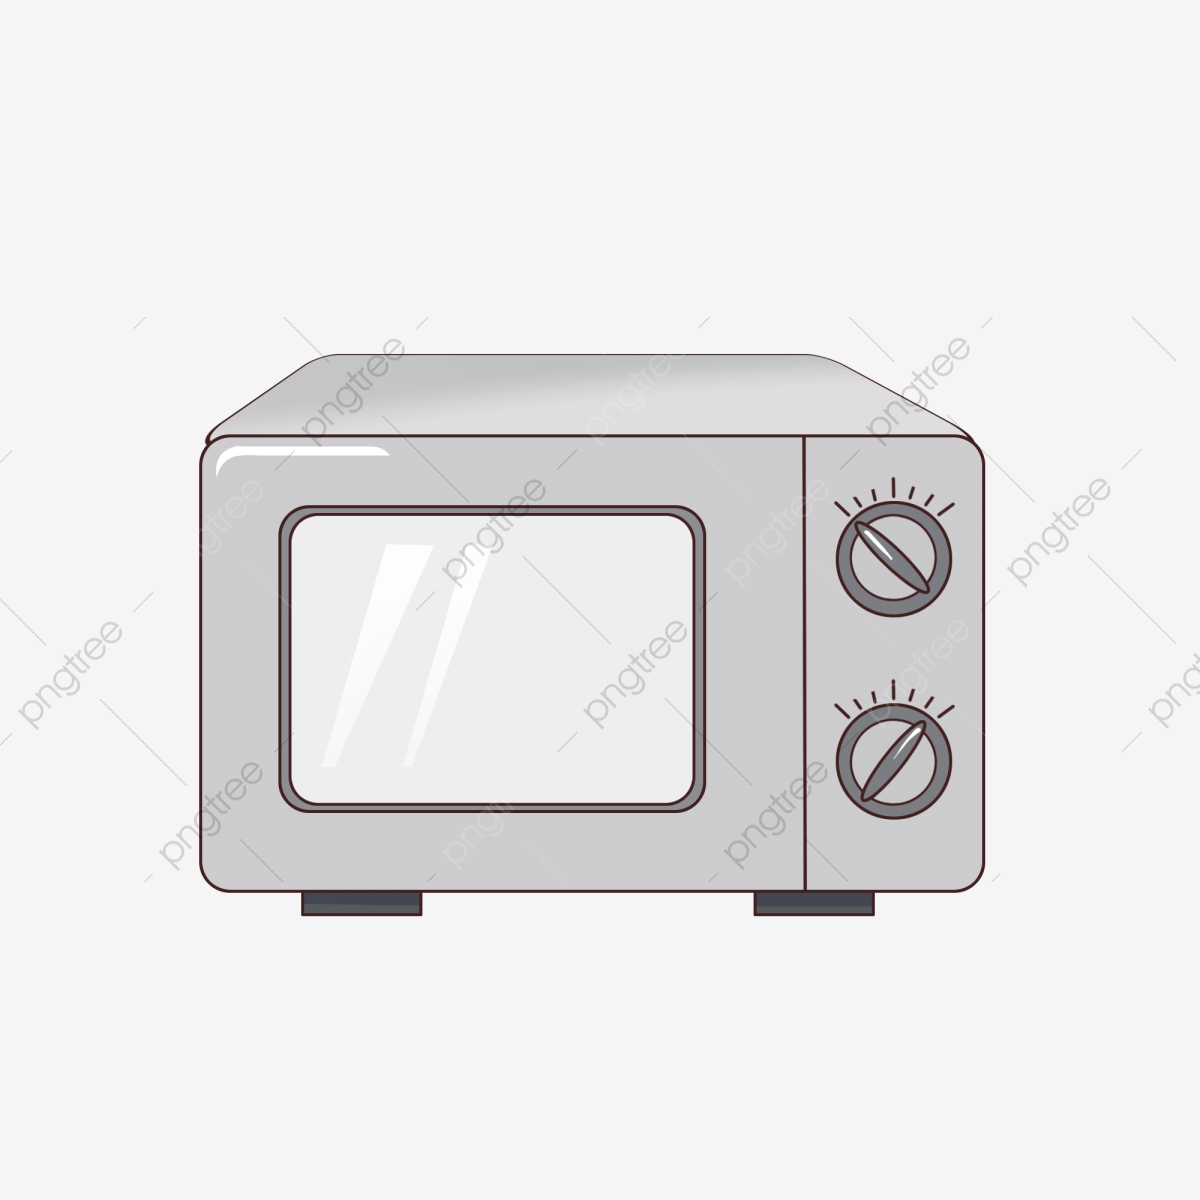 Utensils For Convection Microwave Oven Bestmicrowave